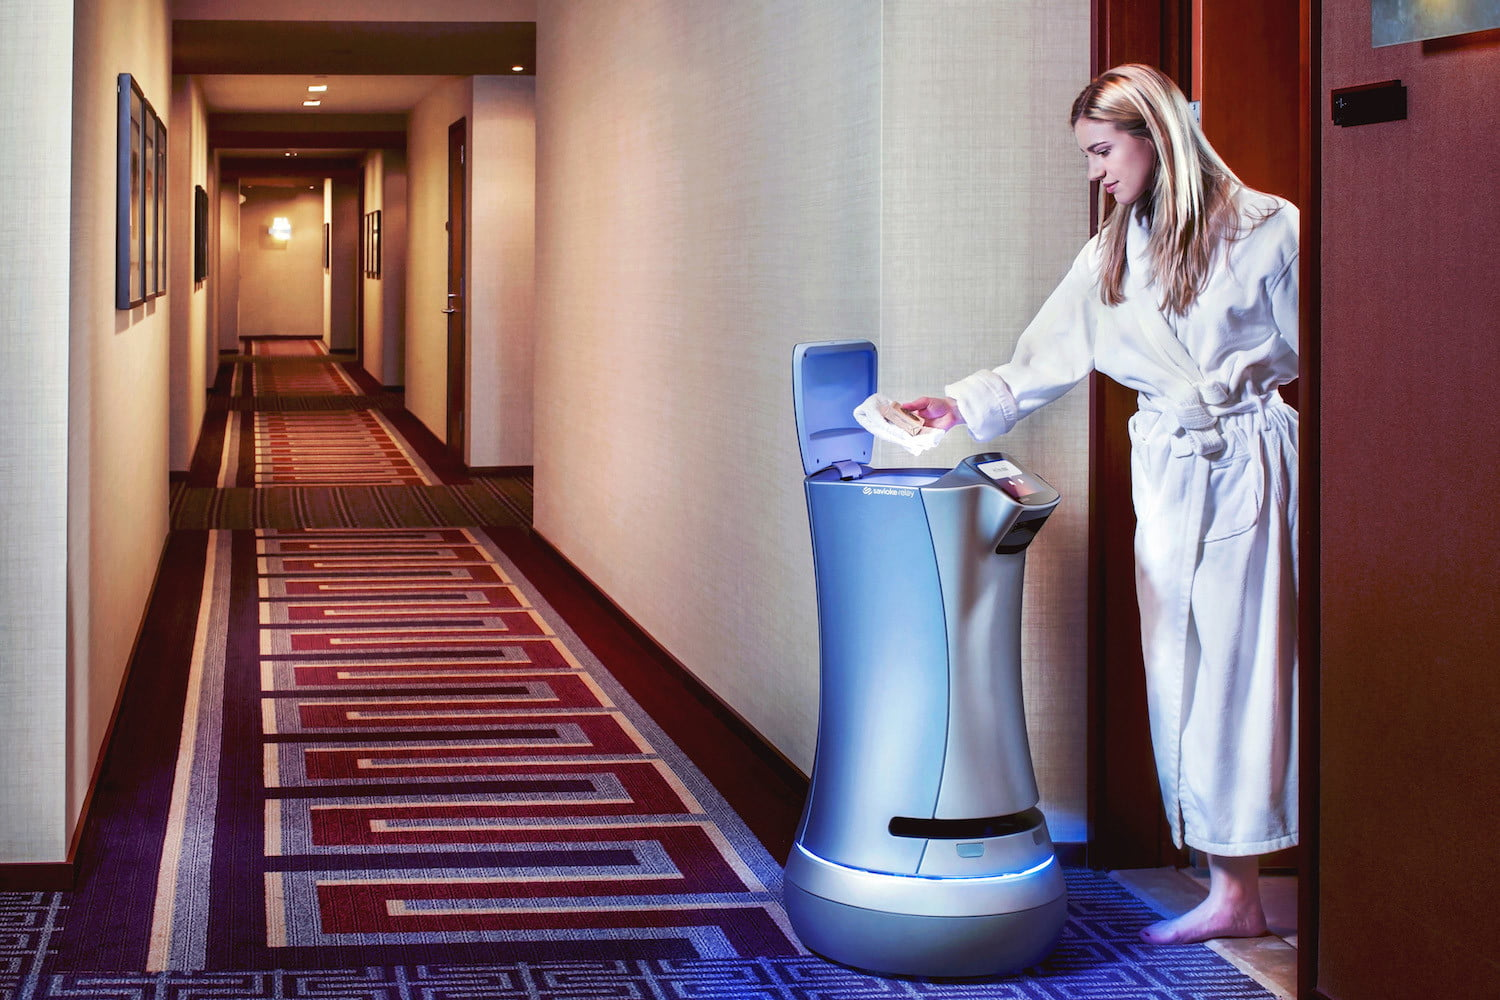 Room-service robot called Relay proves a hit with hotel